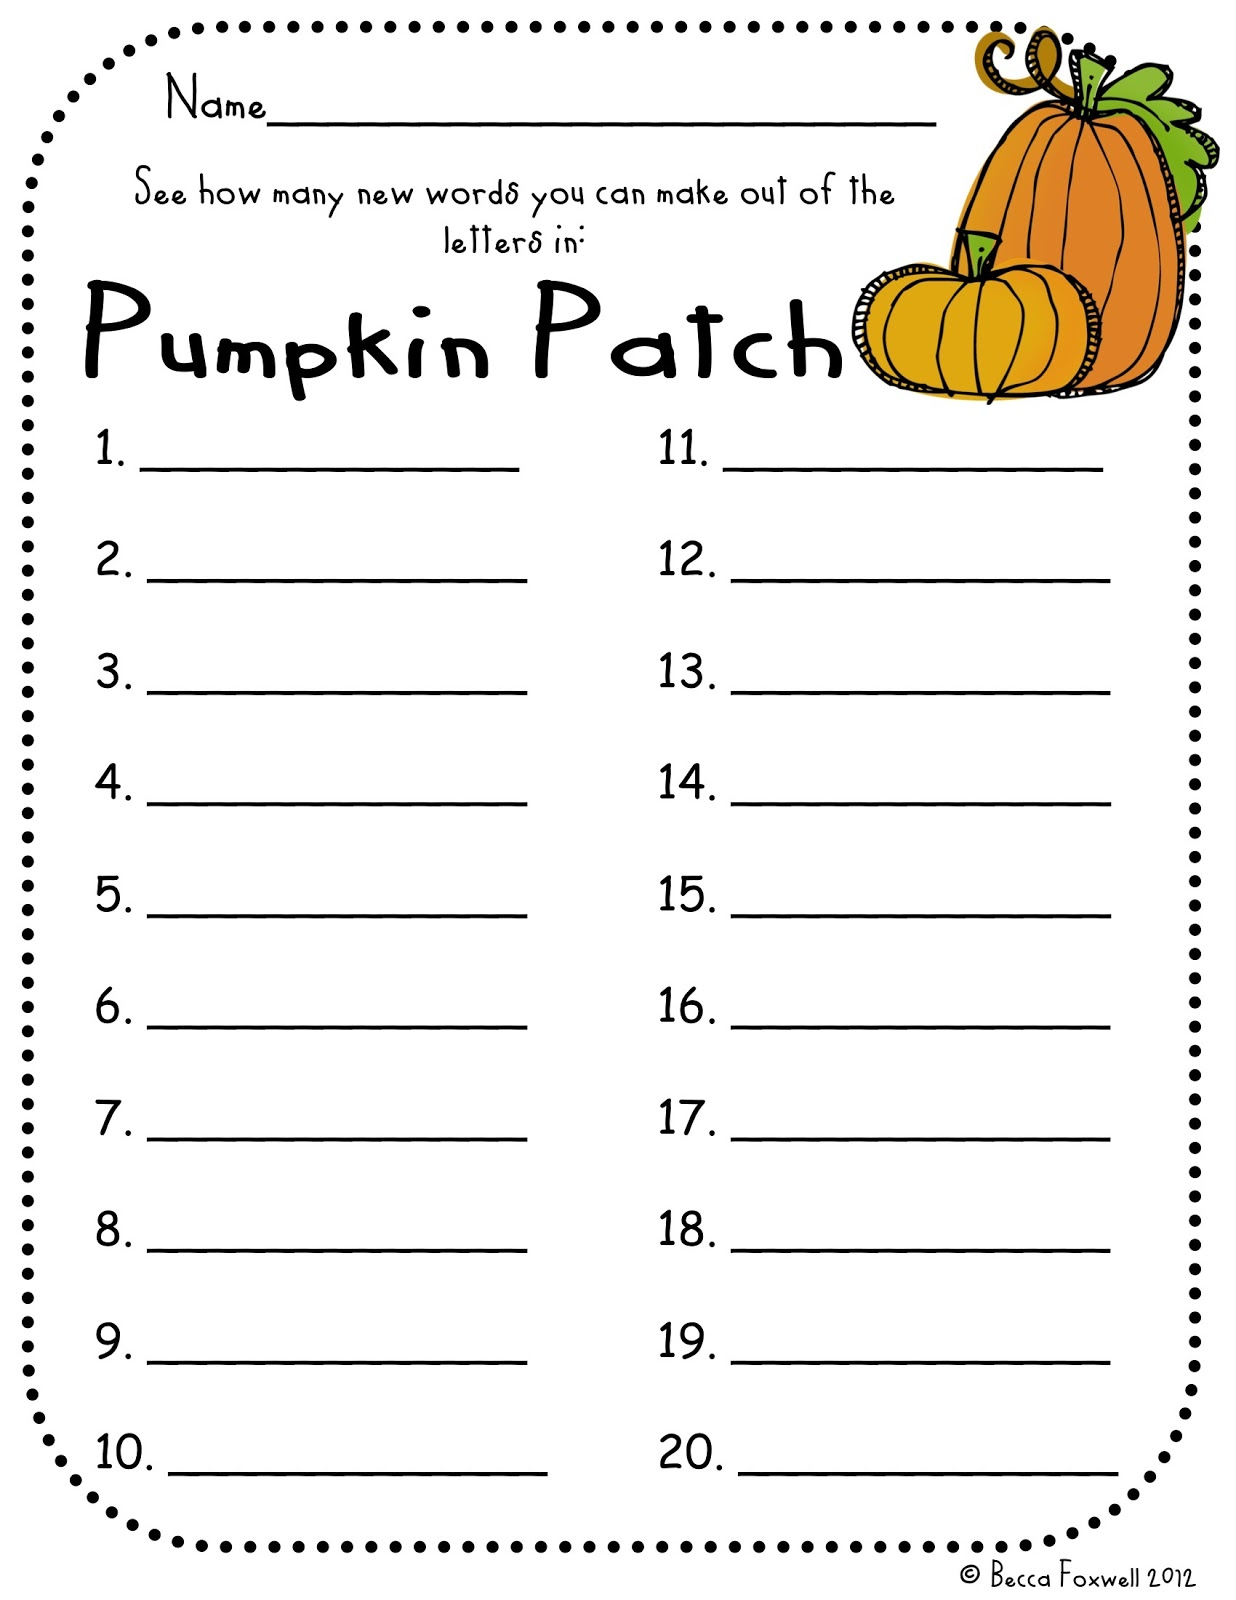 ... many words they can make out of the letters in the words pumpkin patch